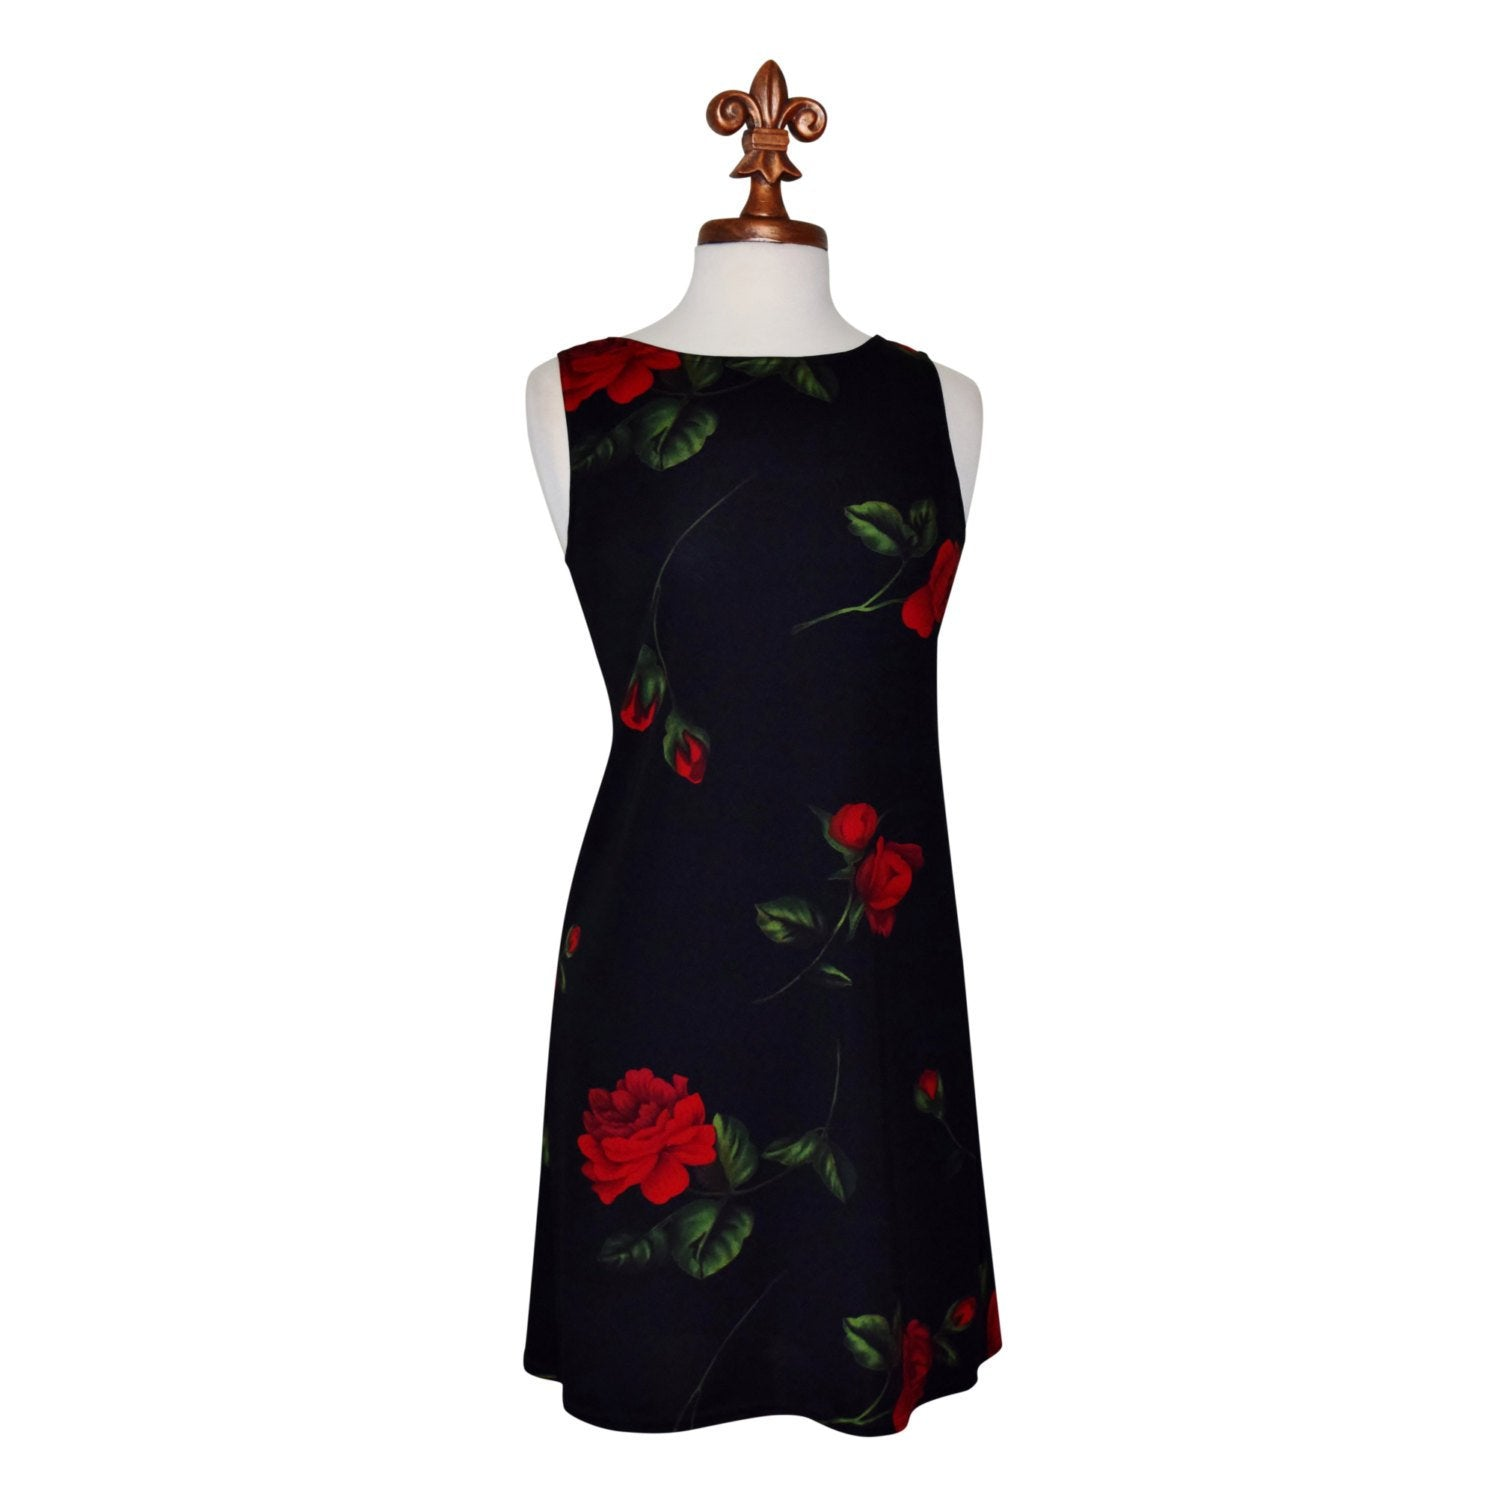 80s Bold Floral Spanish Rose, Great American Sportswear Floral Dress, Sz M - Ysabel Vintage Online